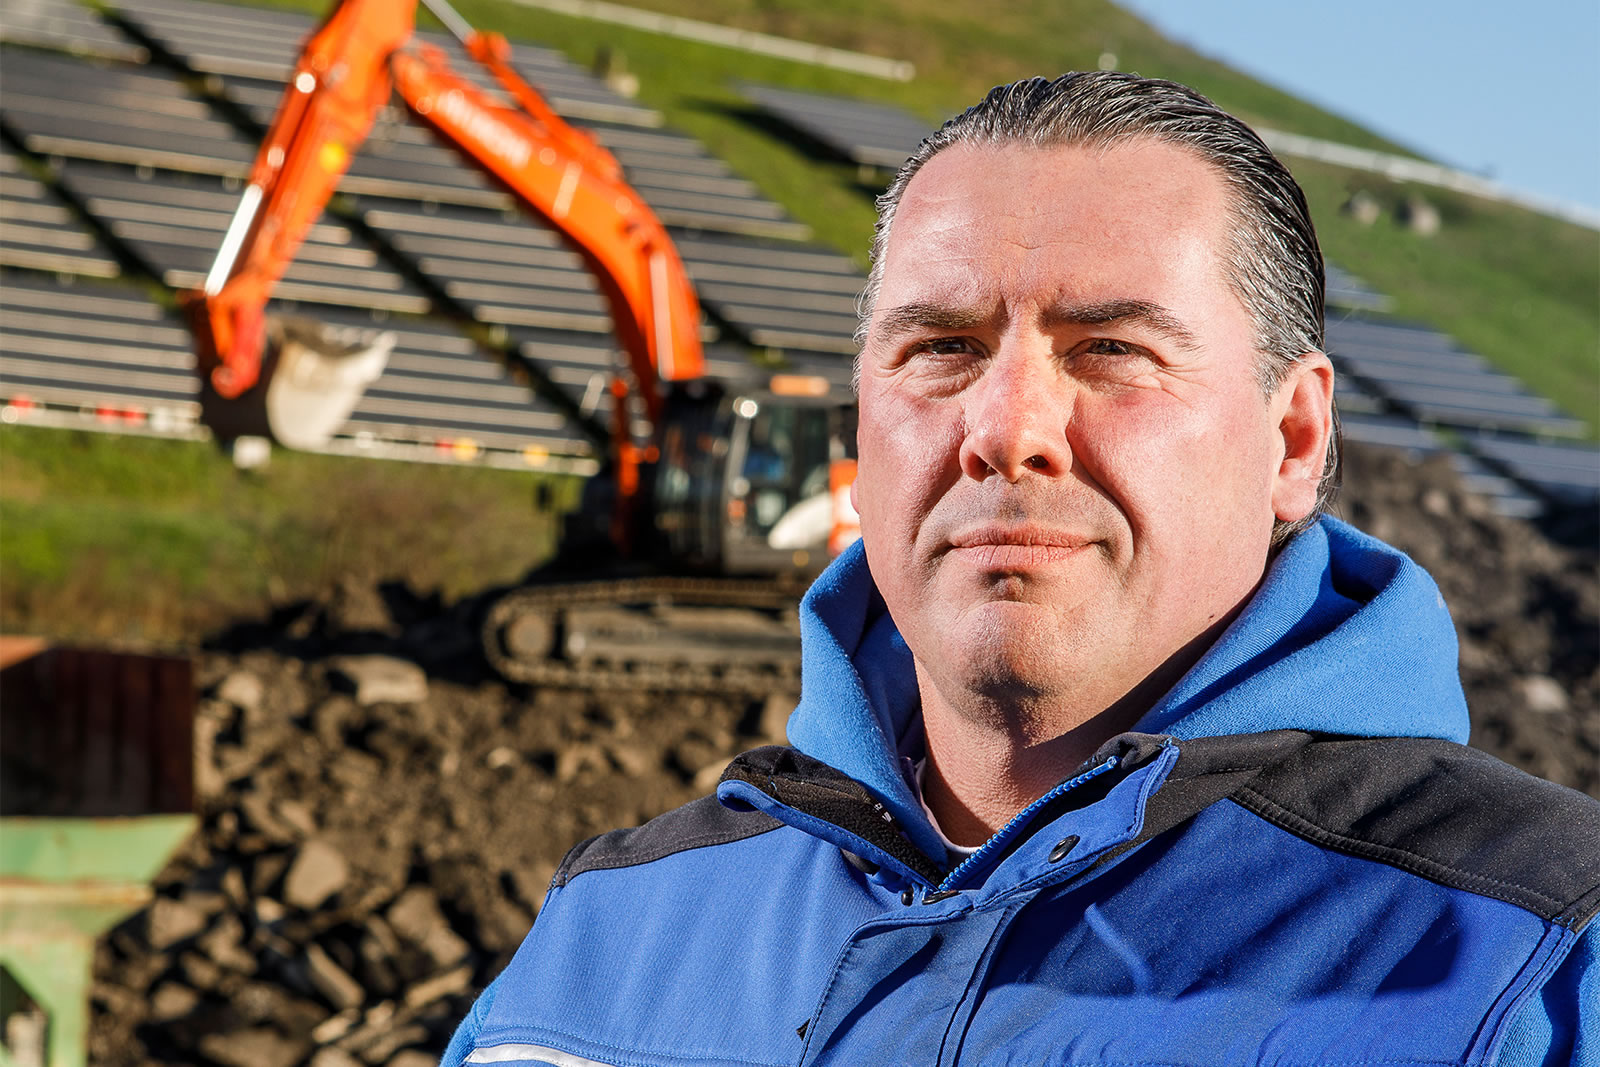 Hitachi ZX300LCN-6 excavator Owner Fred Walther